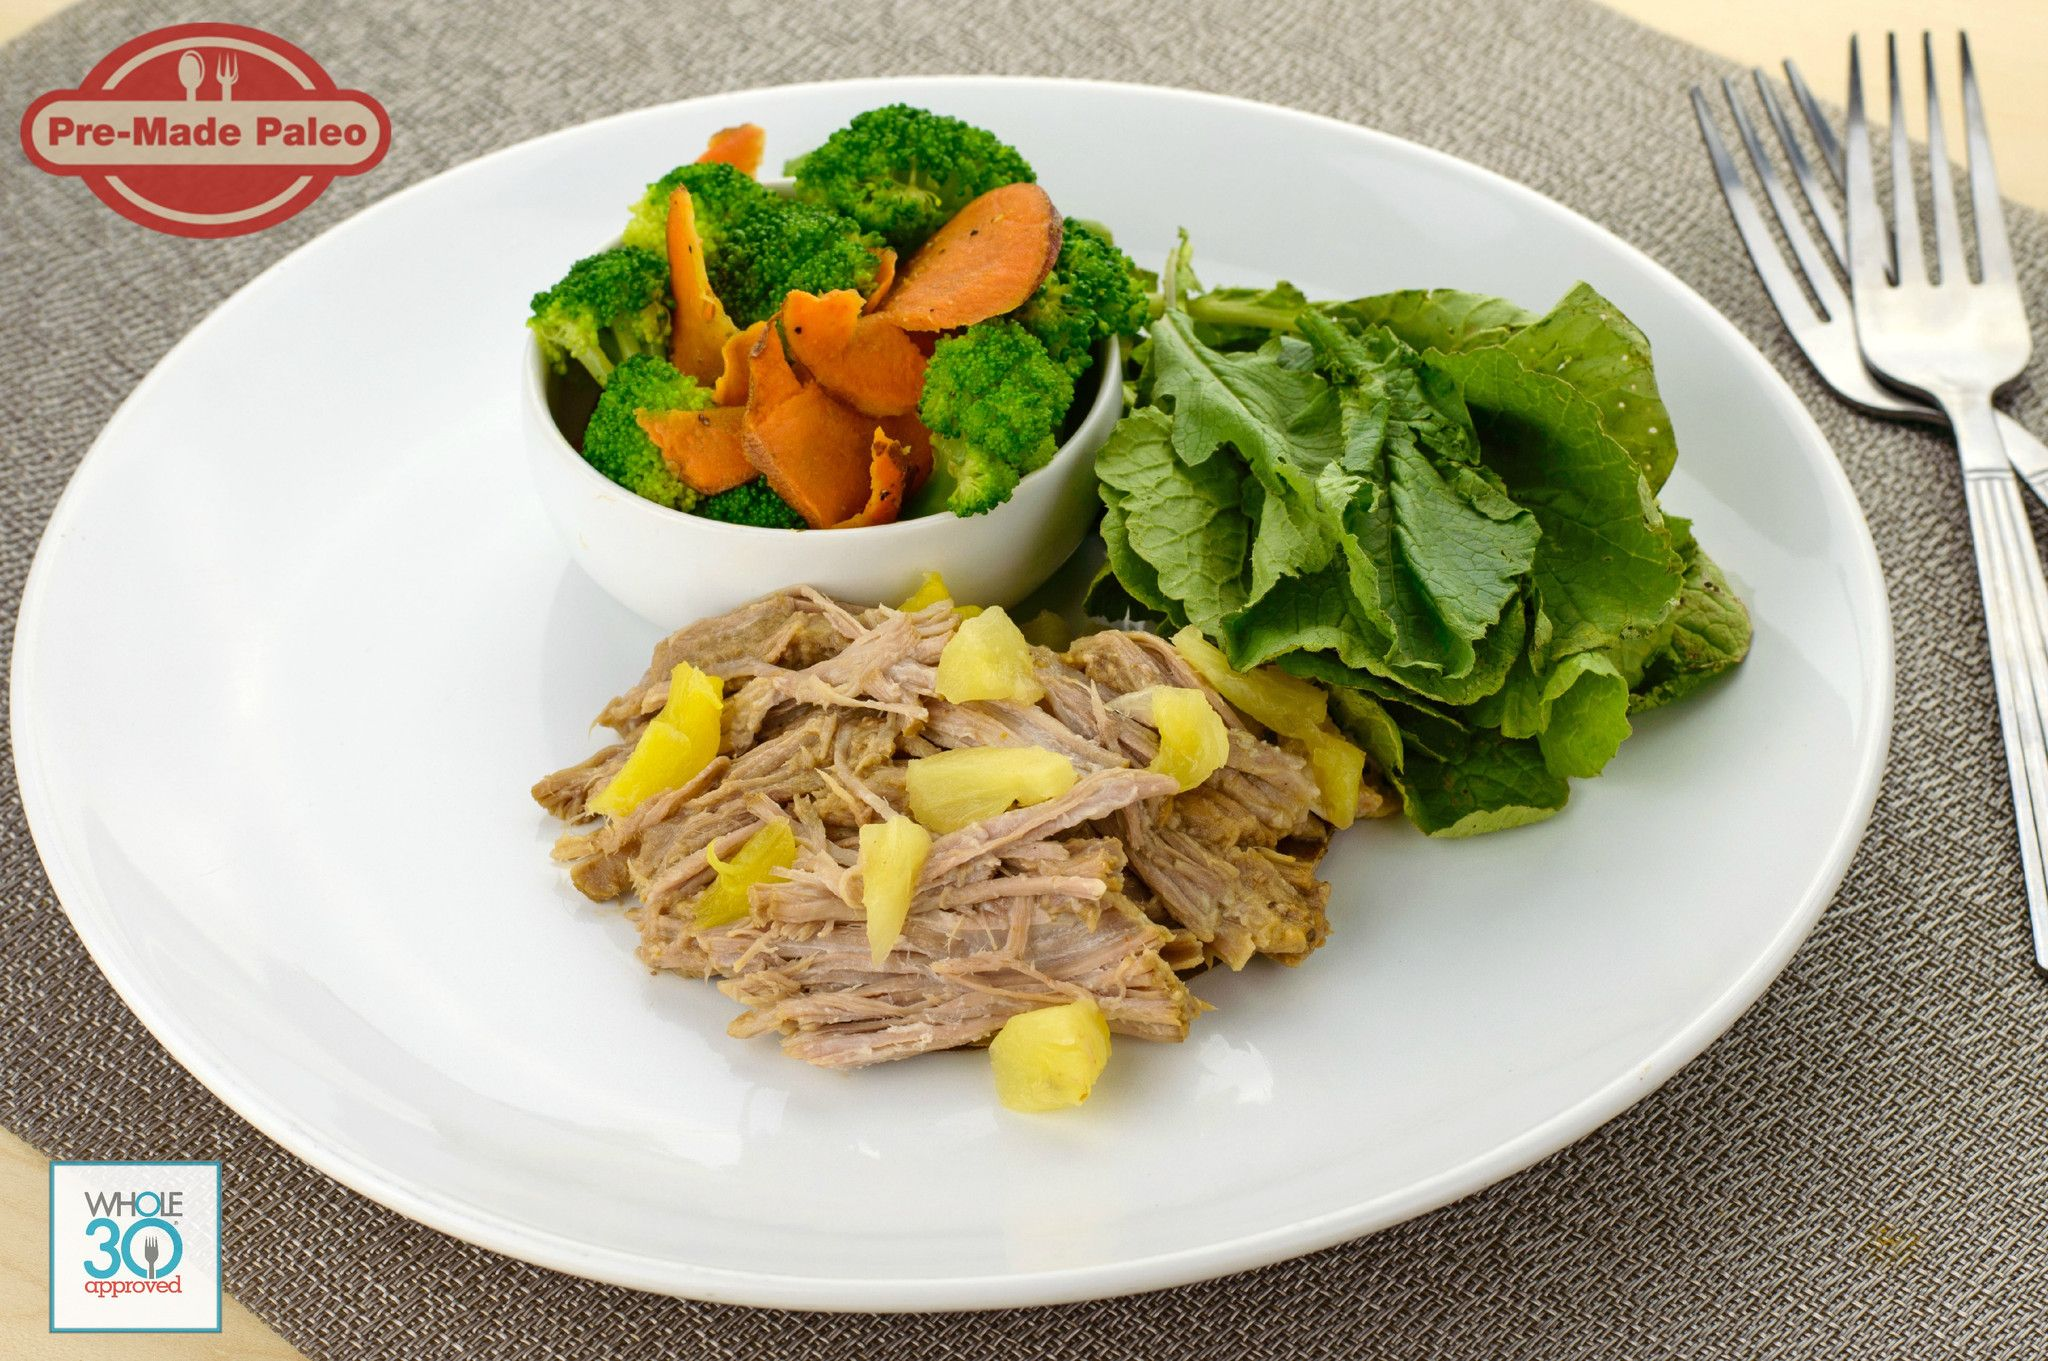 AIP- 5 Day Whole30® Program Meal Plan